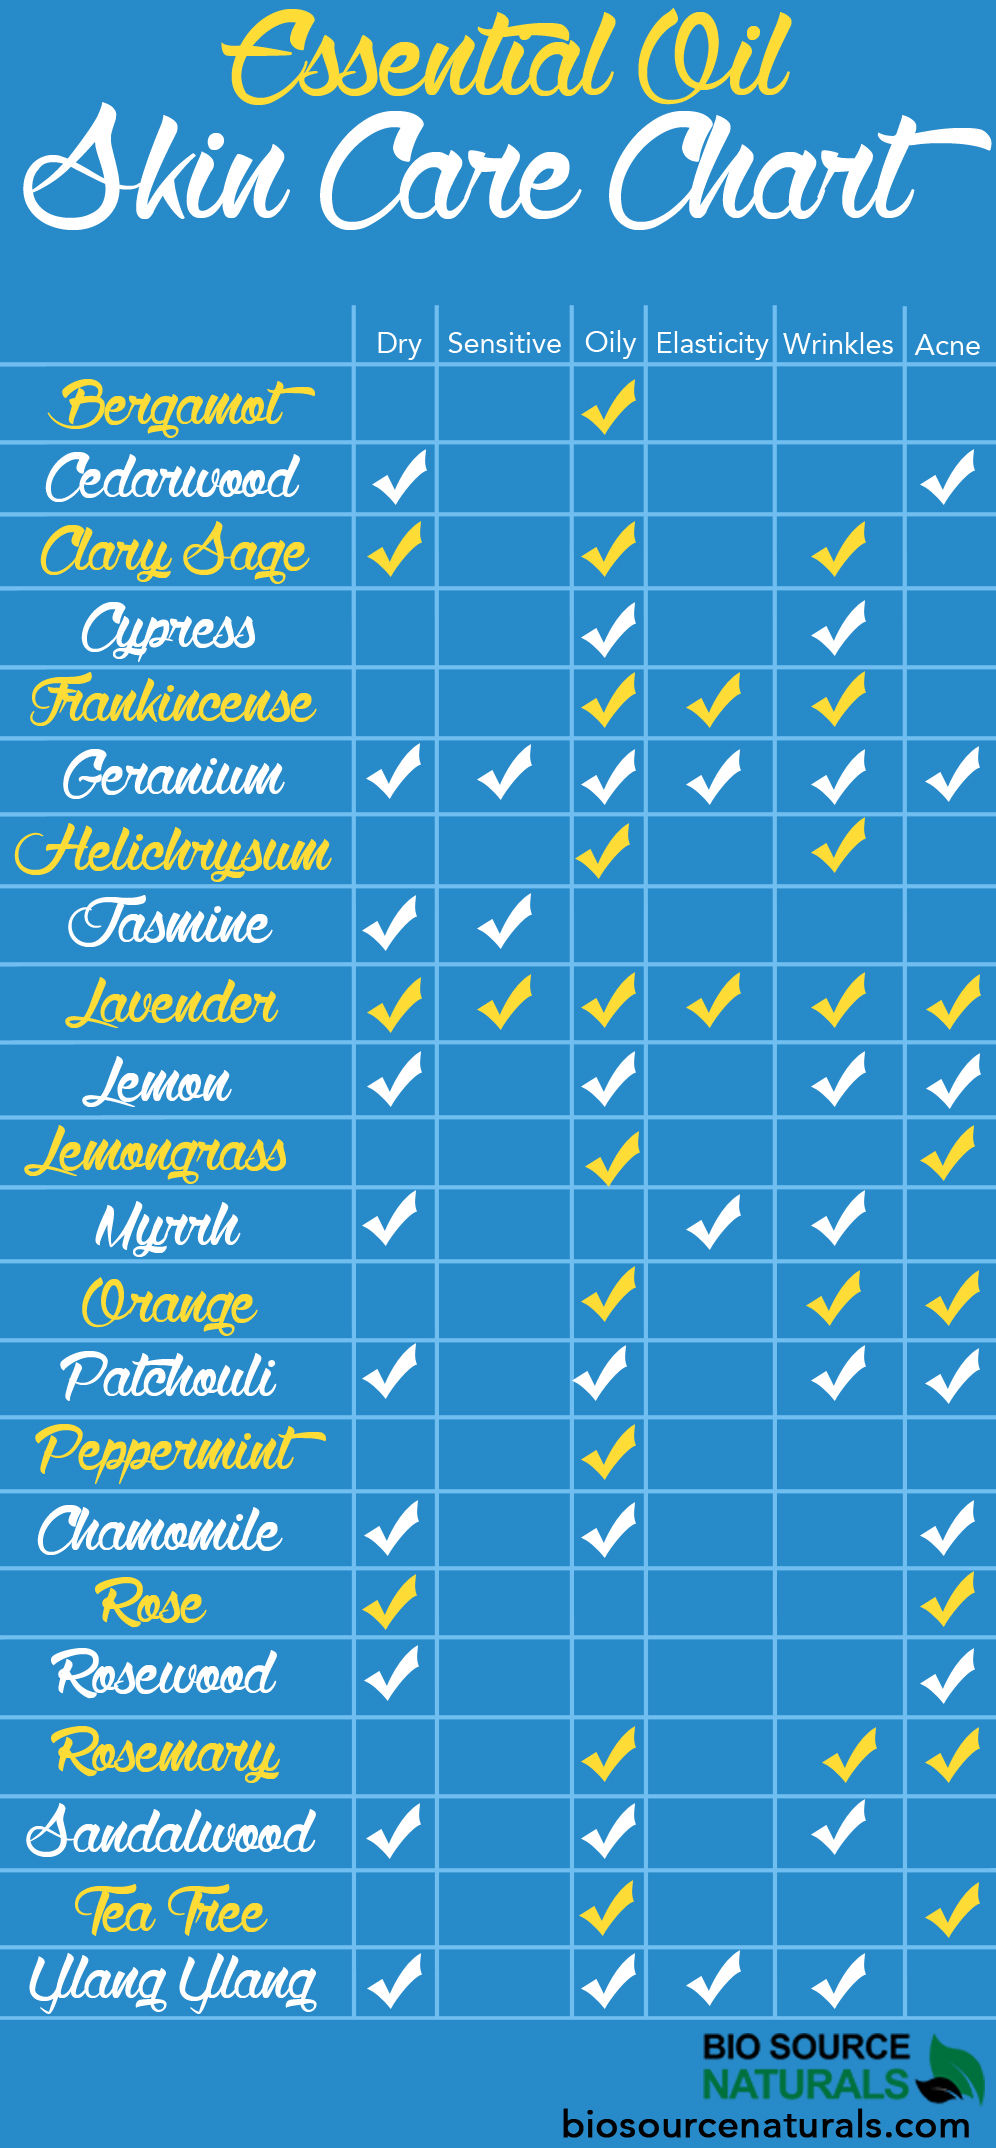 Essential oil skin care chart pictures photos and images for facebook tumblr pinterest and - The best oils for the skin ...